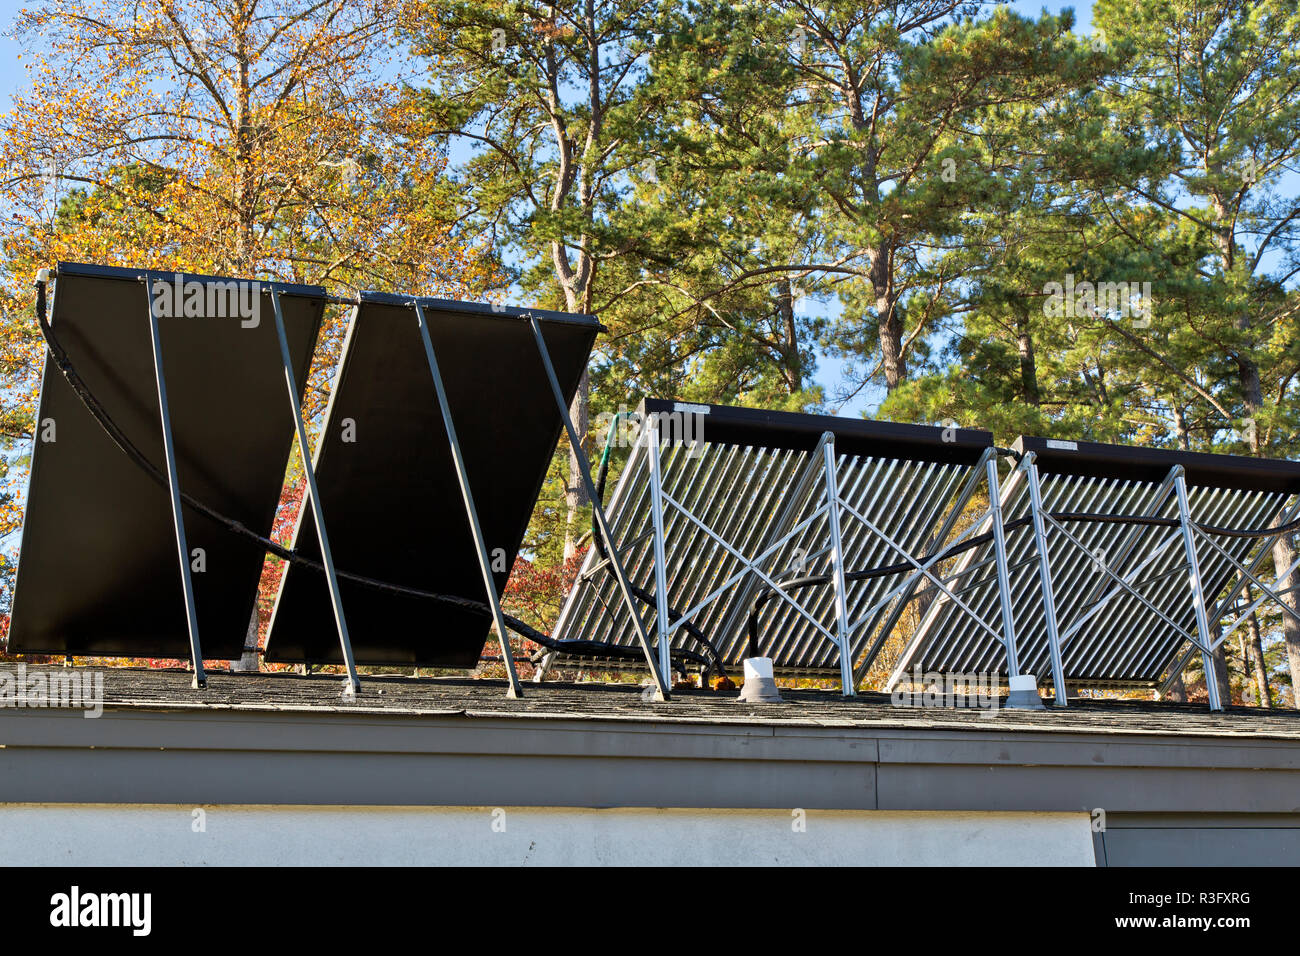 Rear view, solar hot water heaters on bathroom roof,  facilitating Melton Hill Dam Recreation Area Campground. - Stock Image